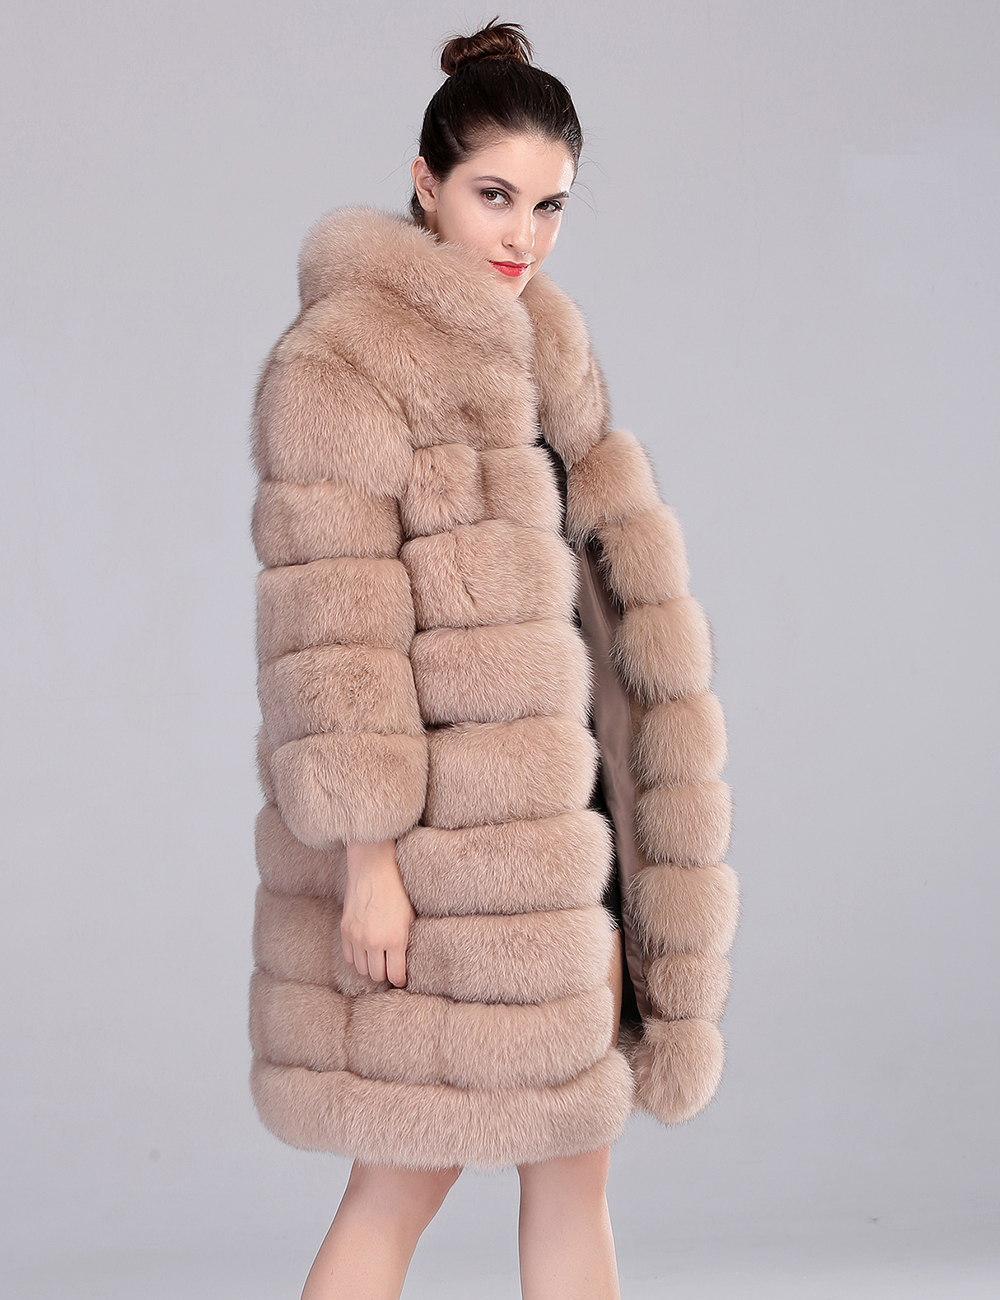 Popular natural fur coats women of Good Quality and at Affordable Prices You can Buy on AliExpress. We believe in helping you find the product that is right for you. AliExpress carries wide variety of products, so you can find just what you're looking for – and maybe something you .